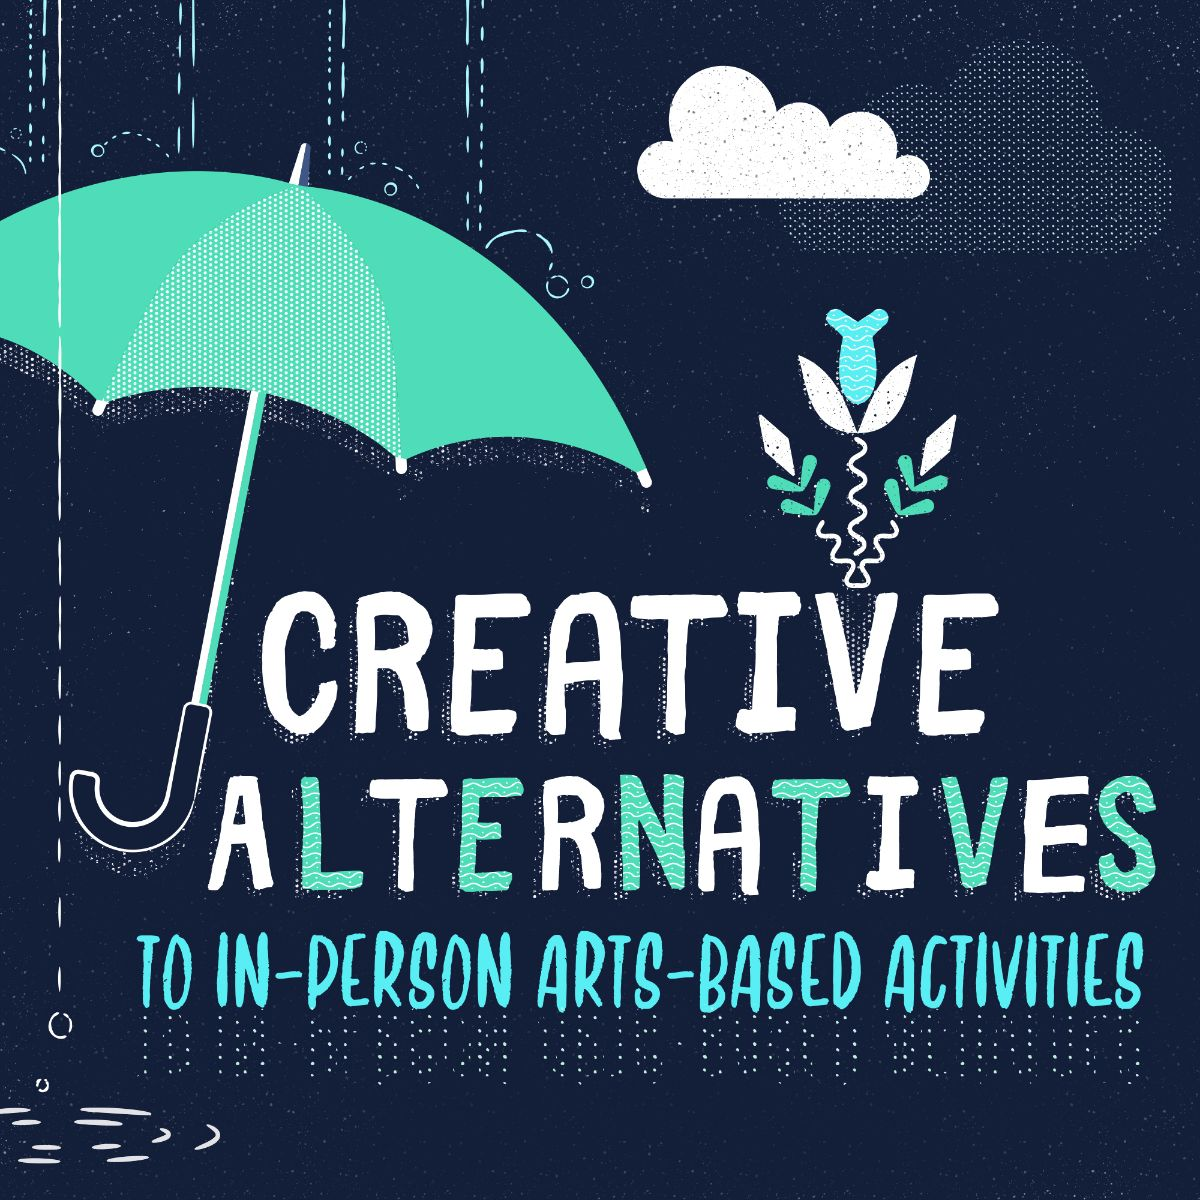 a logo for the toolkit includes a teal umbrella shielding this phrase from the rain: Creative Alternatives to in-person arts-based activities. A flower grows from the V in Creative.